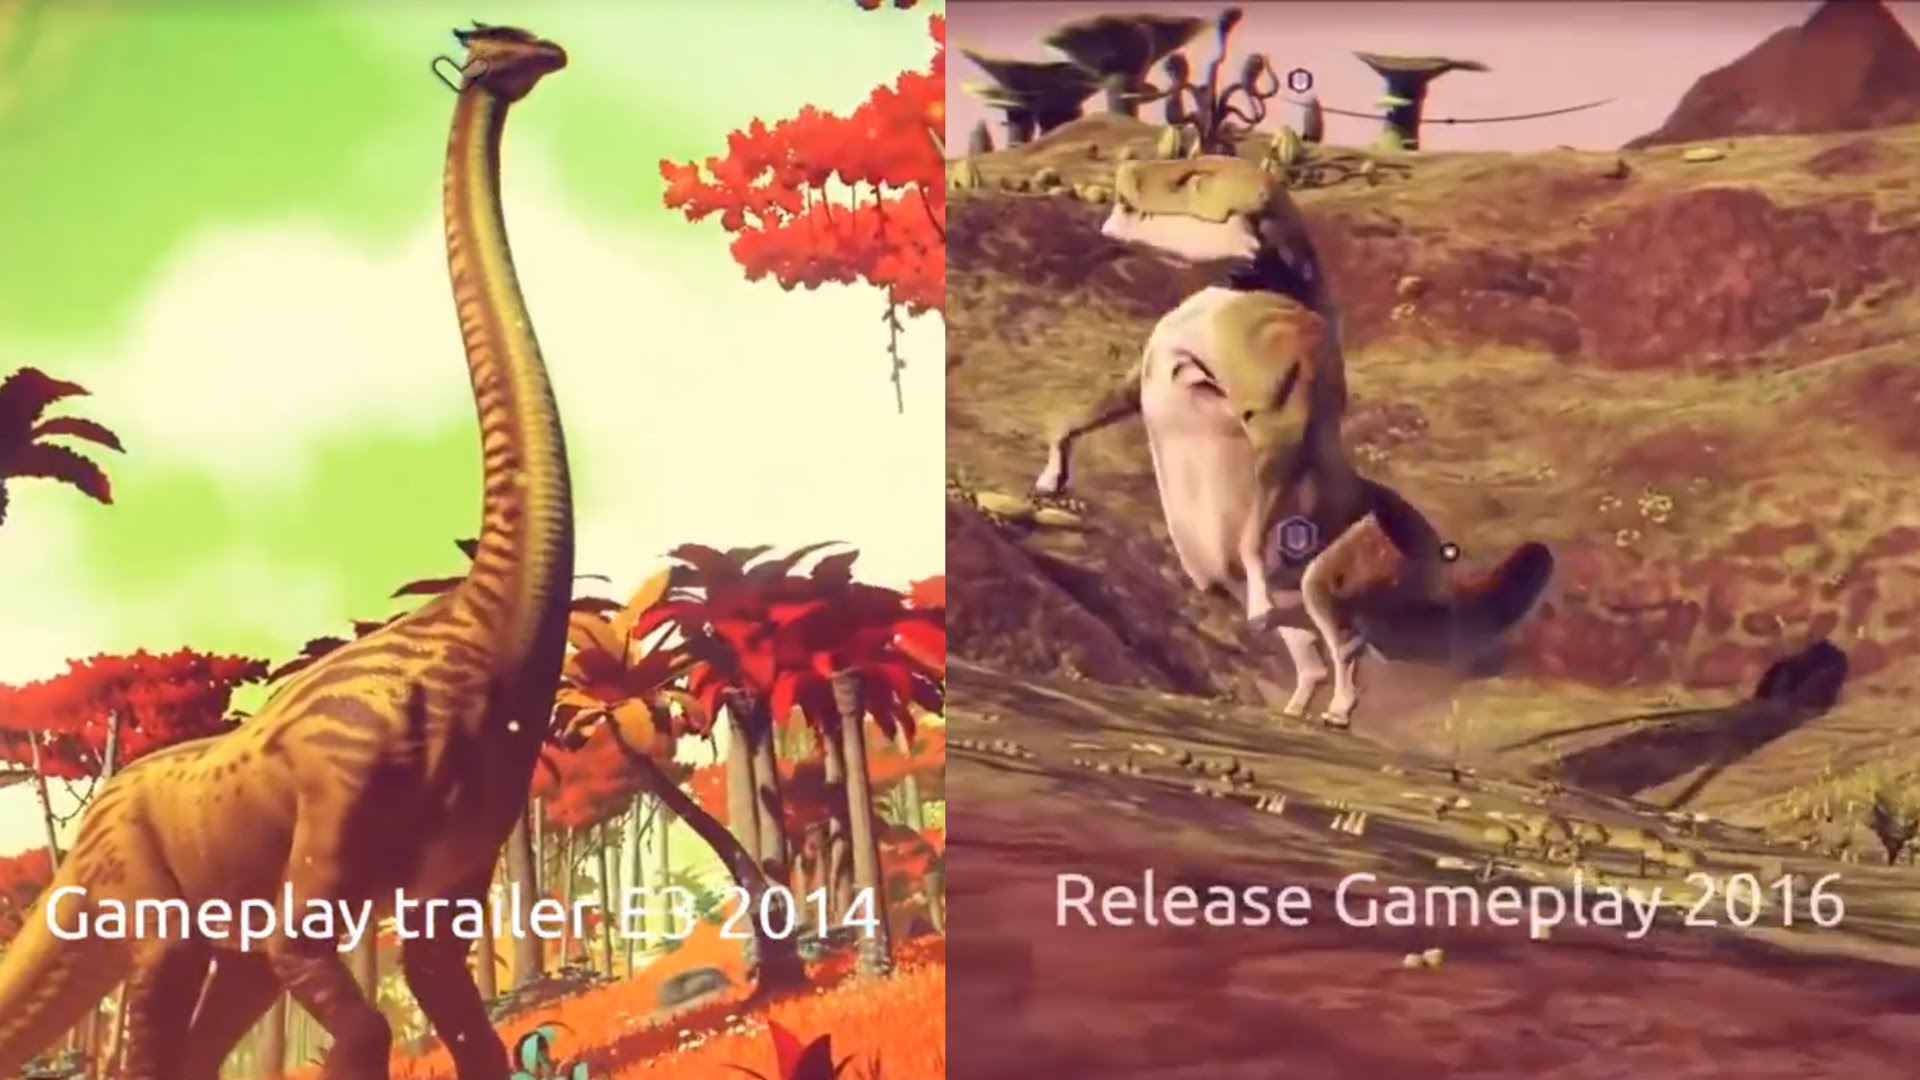 No mans sky screen trailer and real gameplay comparison